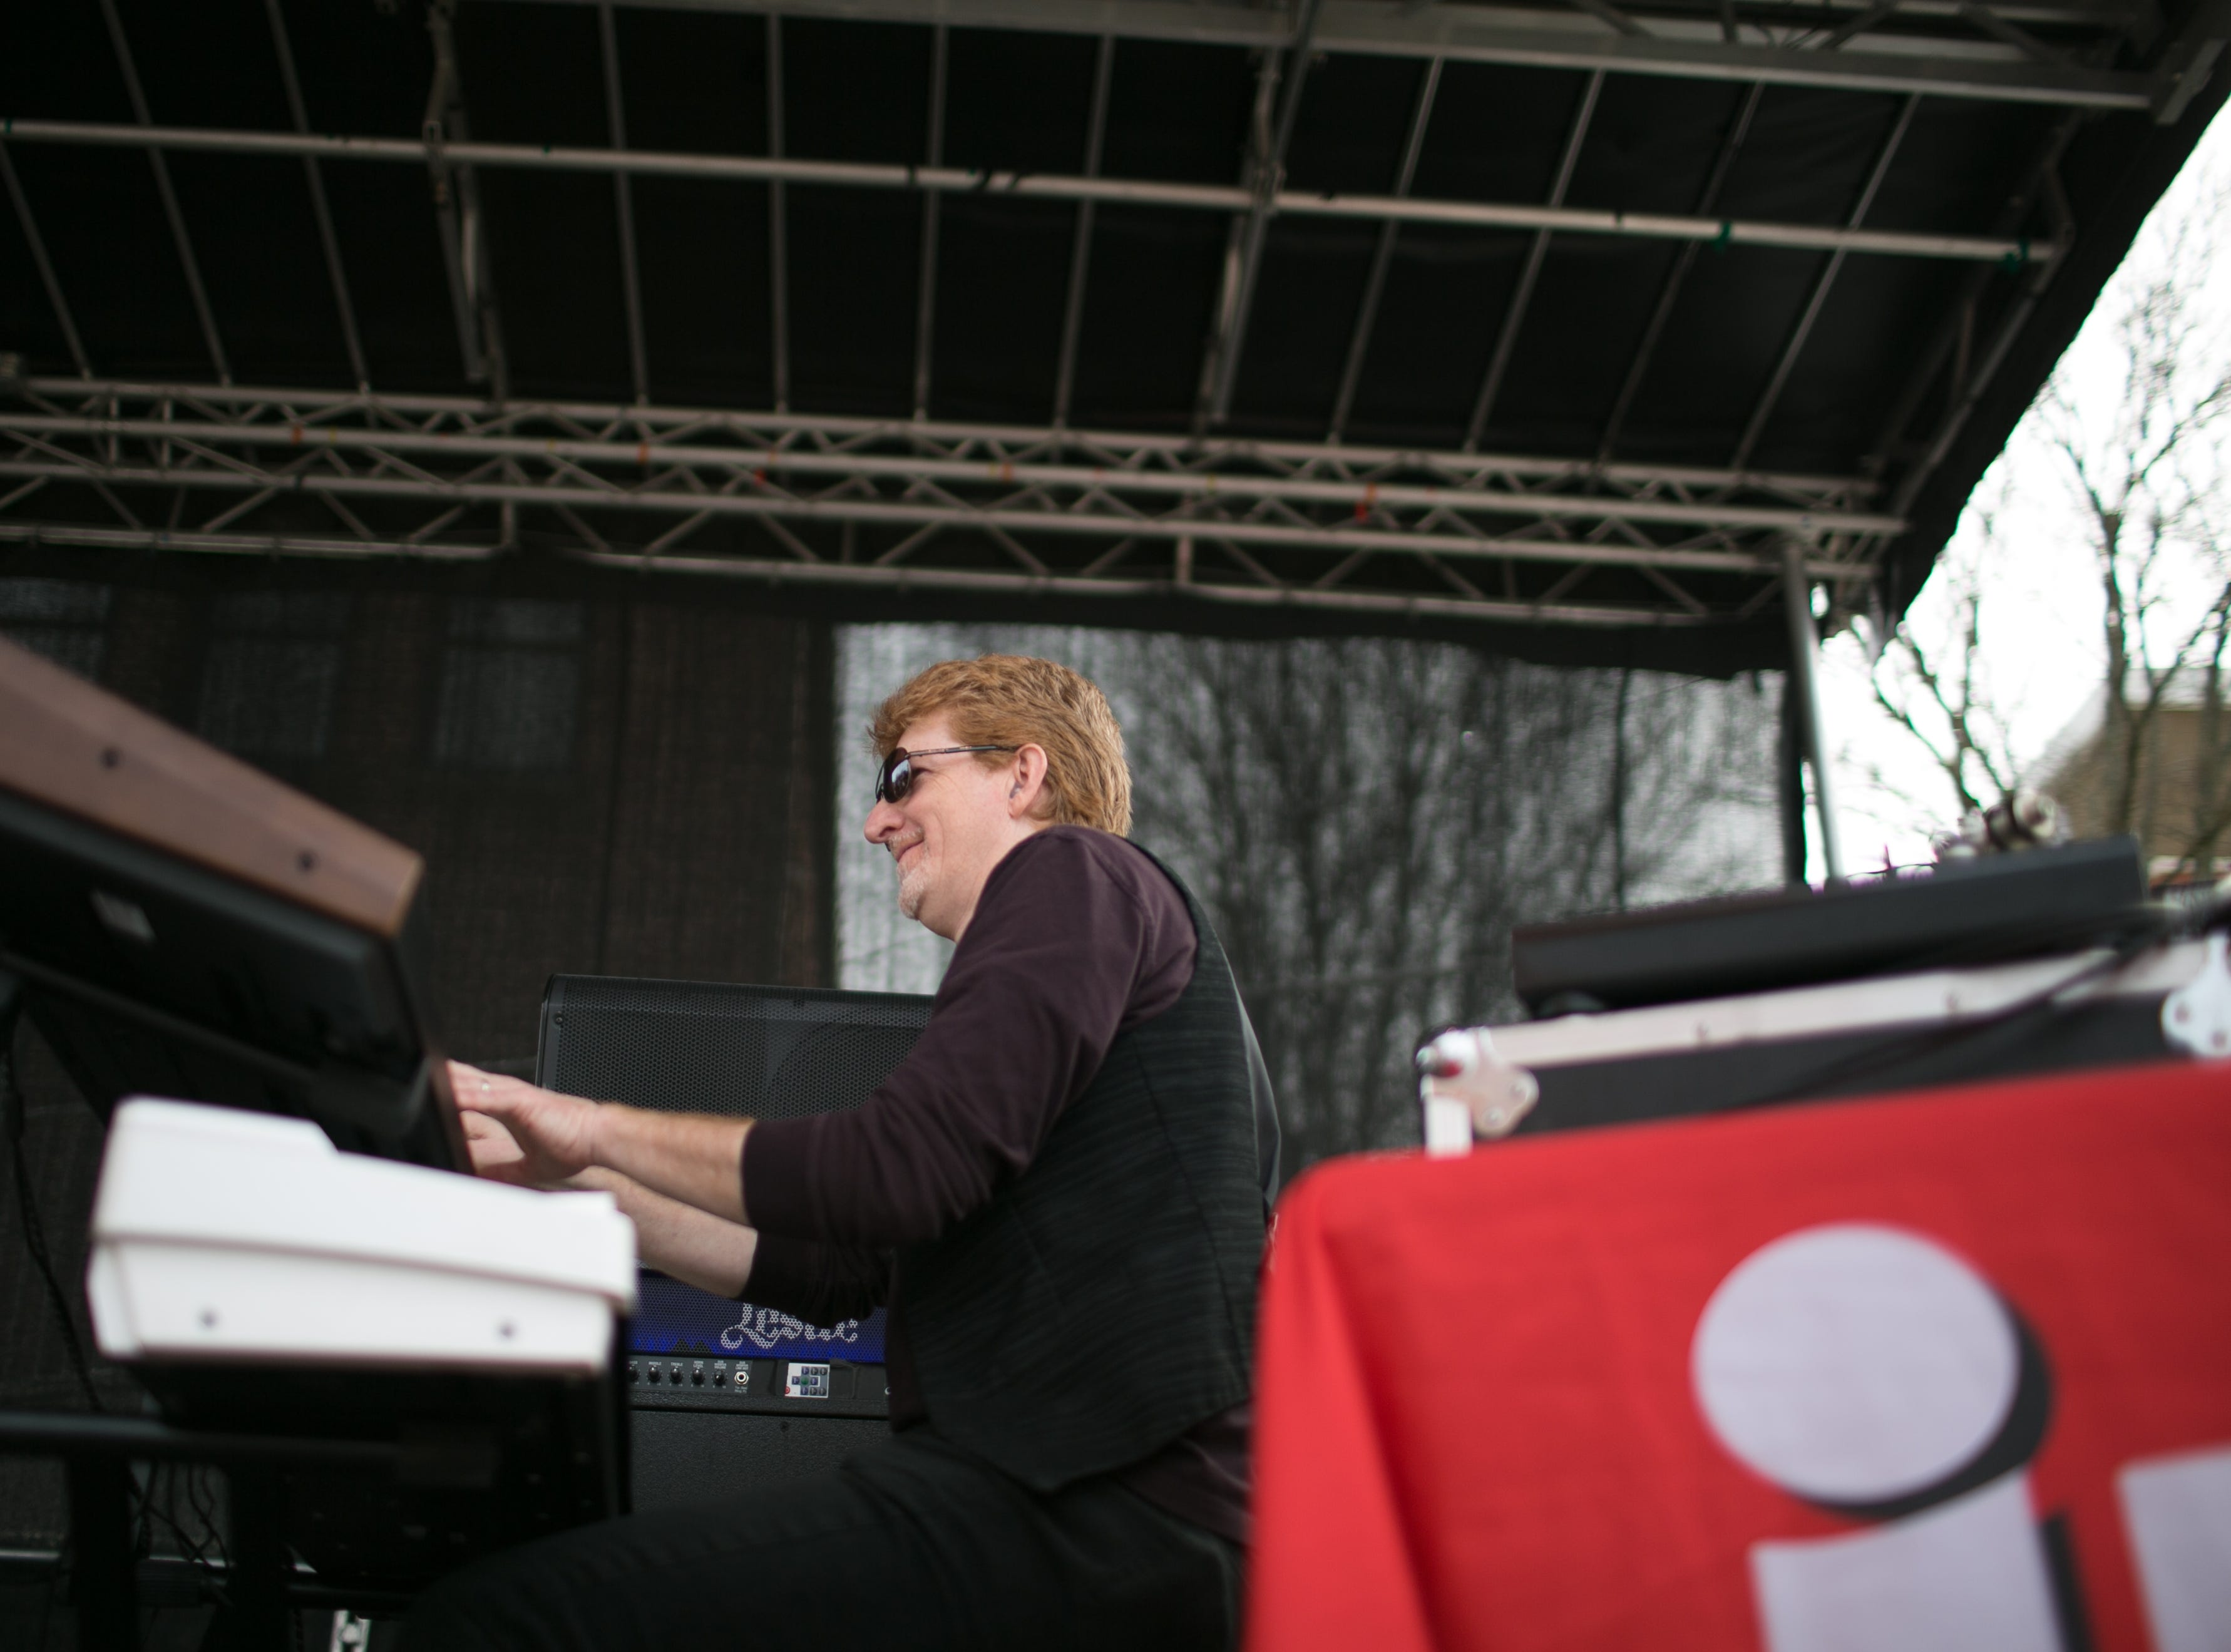 Lyric performs at the Ingles SoCon Fan Experience  across the street from the U.S. Cellular Center, at 68 Haywood St. in downtown Asheville, on March 10, 2019.